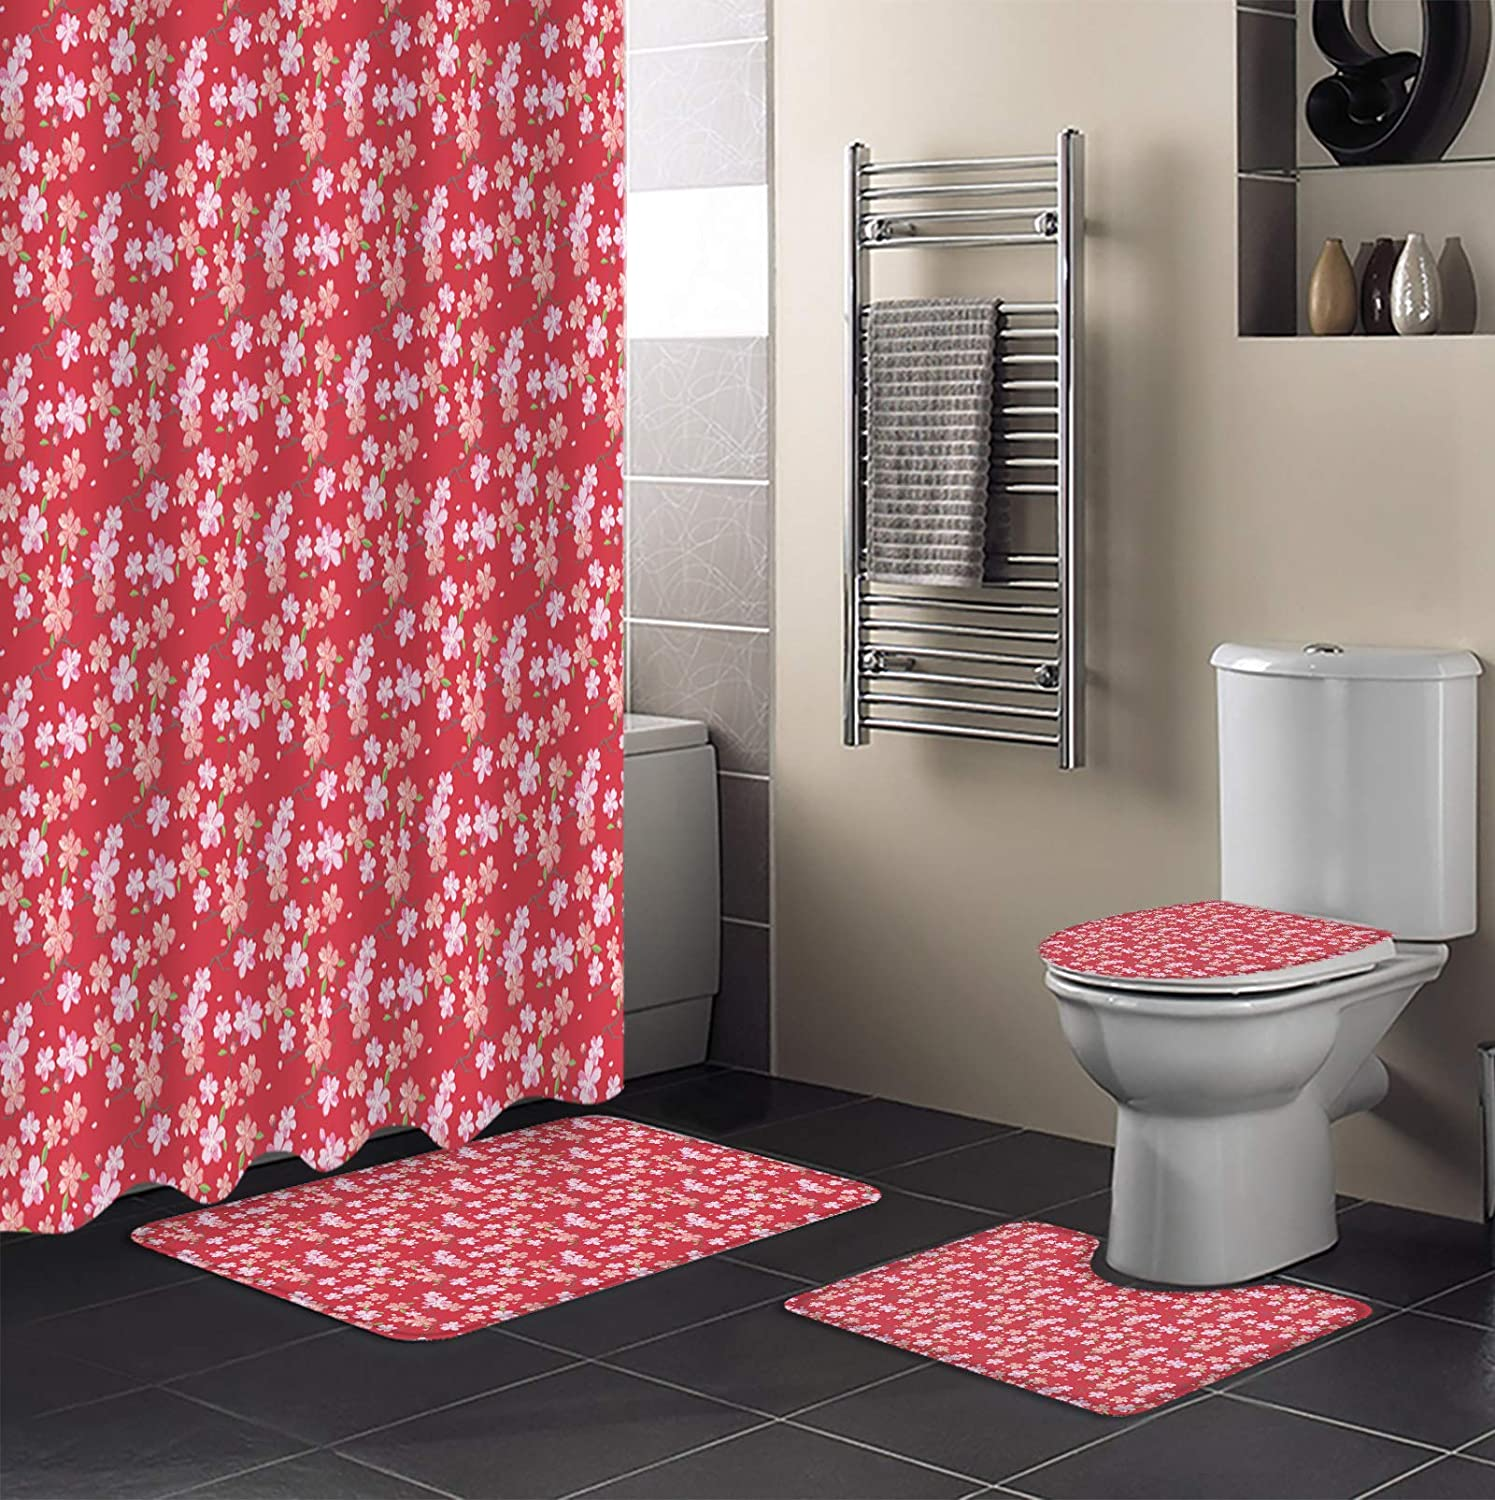 MUSEDAY 4 New item Piece Shower Curtain Sets L All items in the store Rugs Non-Slip Toilet with